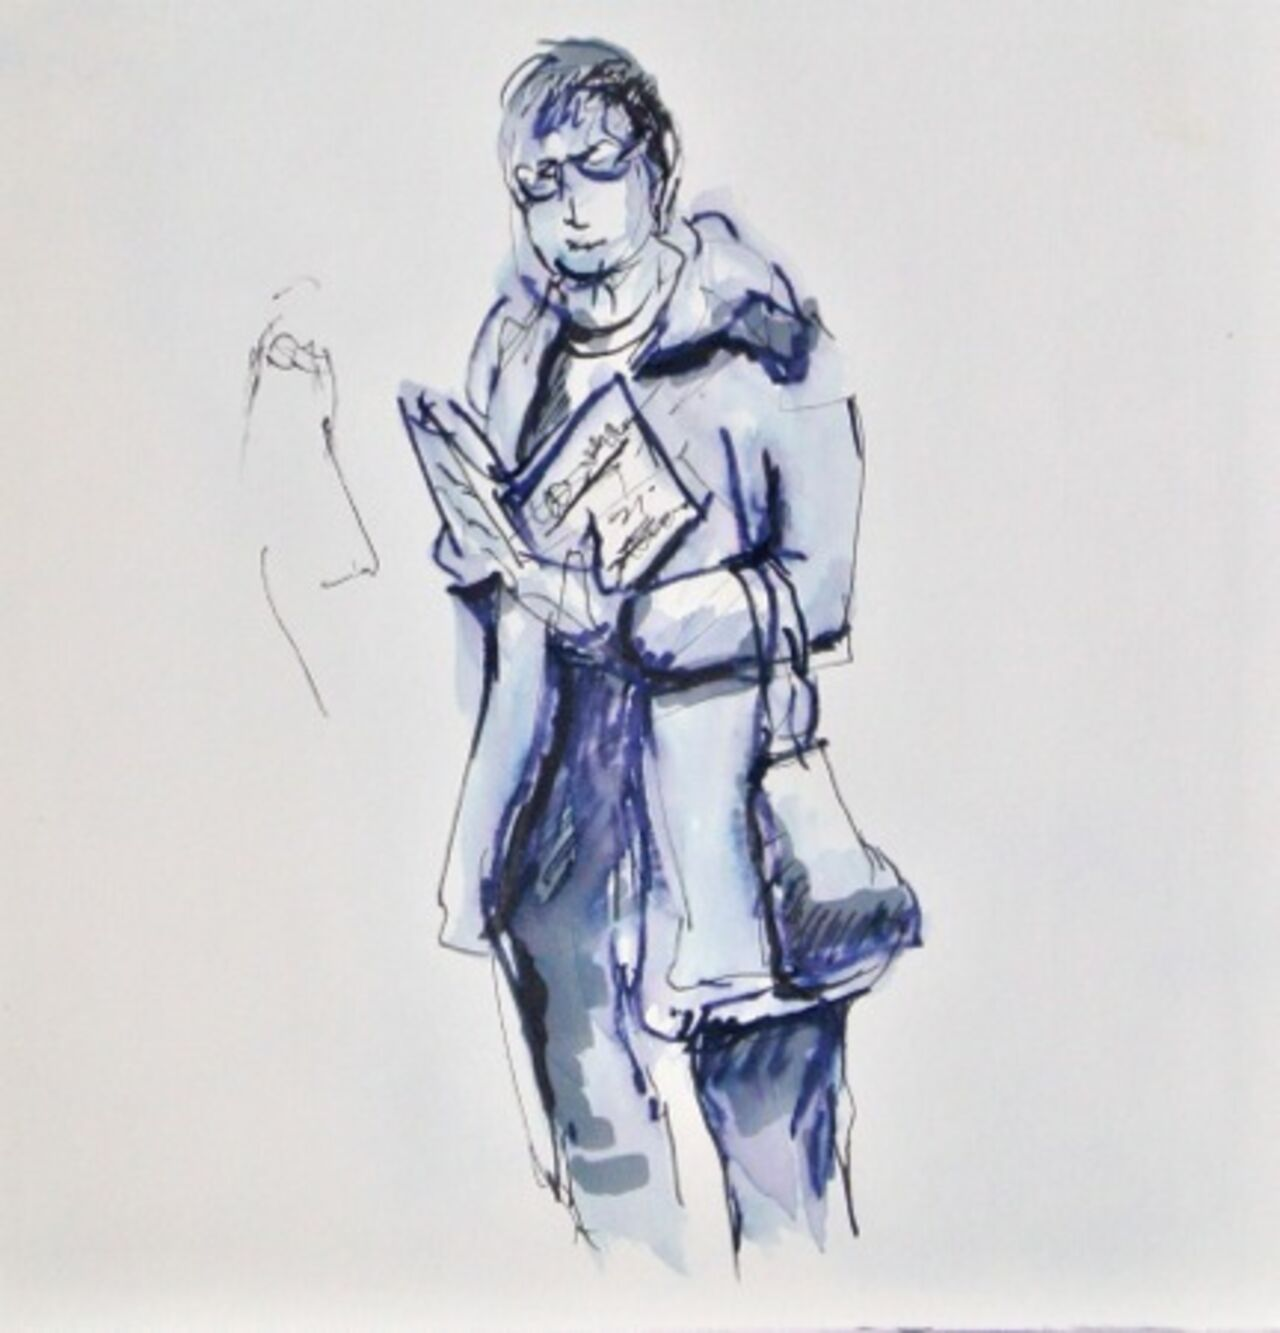 A blue sketch of a person looking at a leaflet.